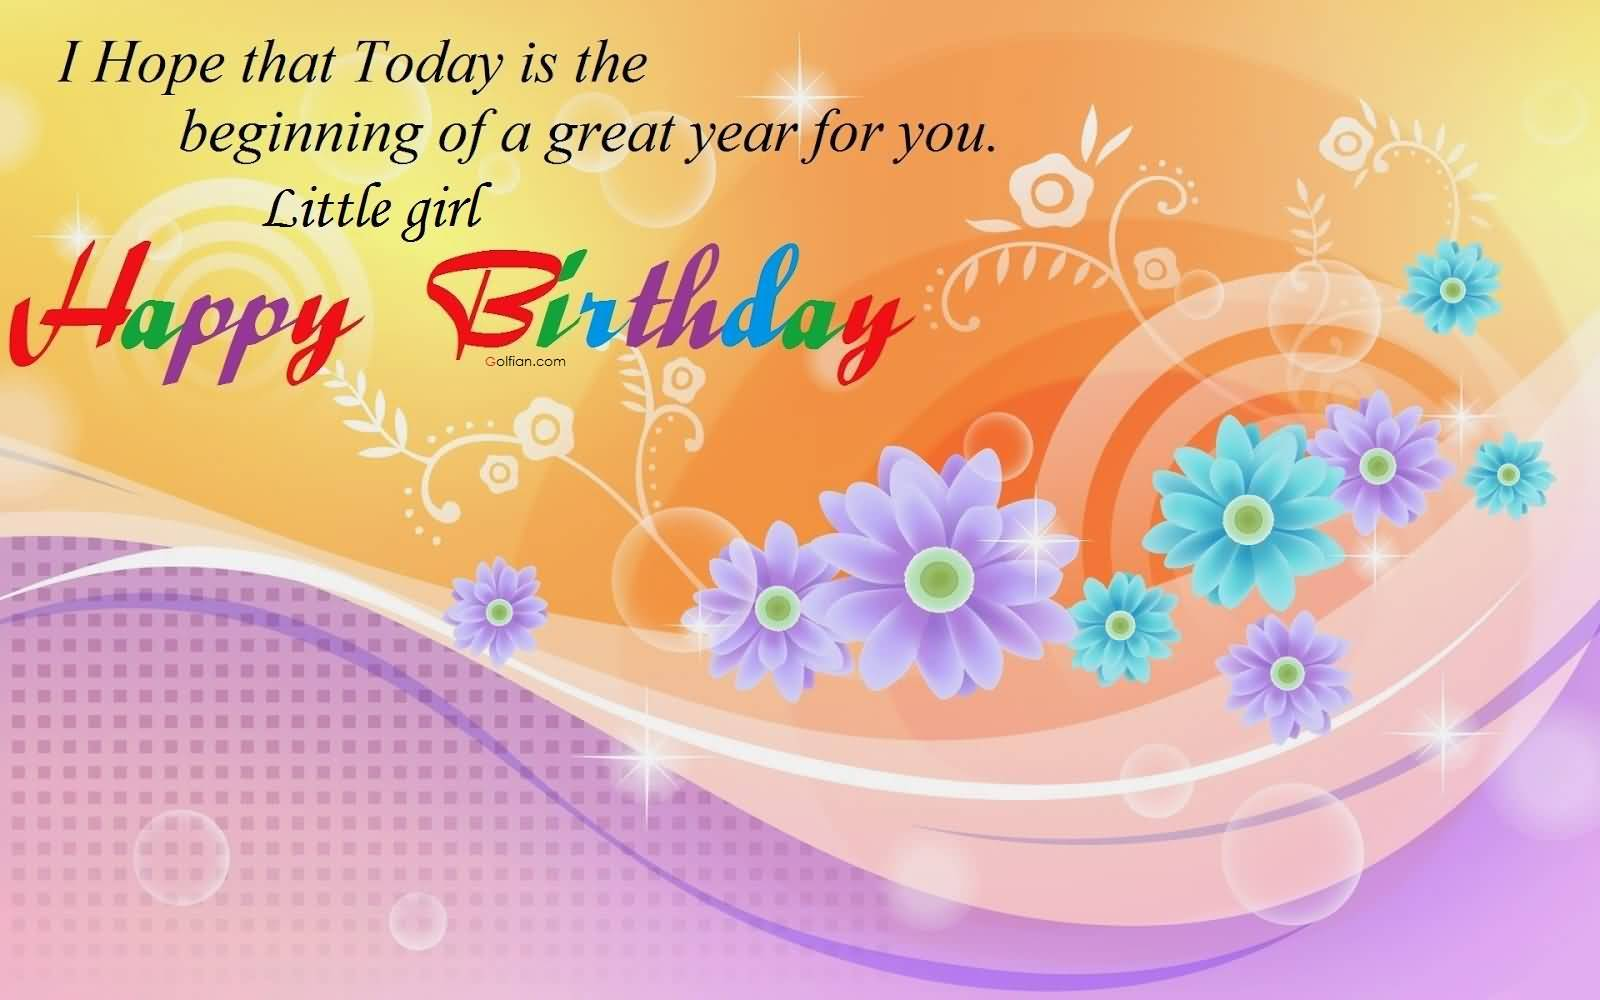 beautiful birthday picture messages ; Lovely-Greetings-Birthday-Wishes-For-Little-Girl